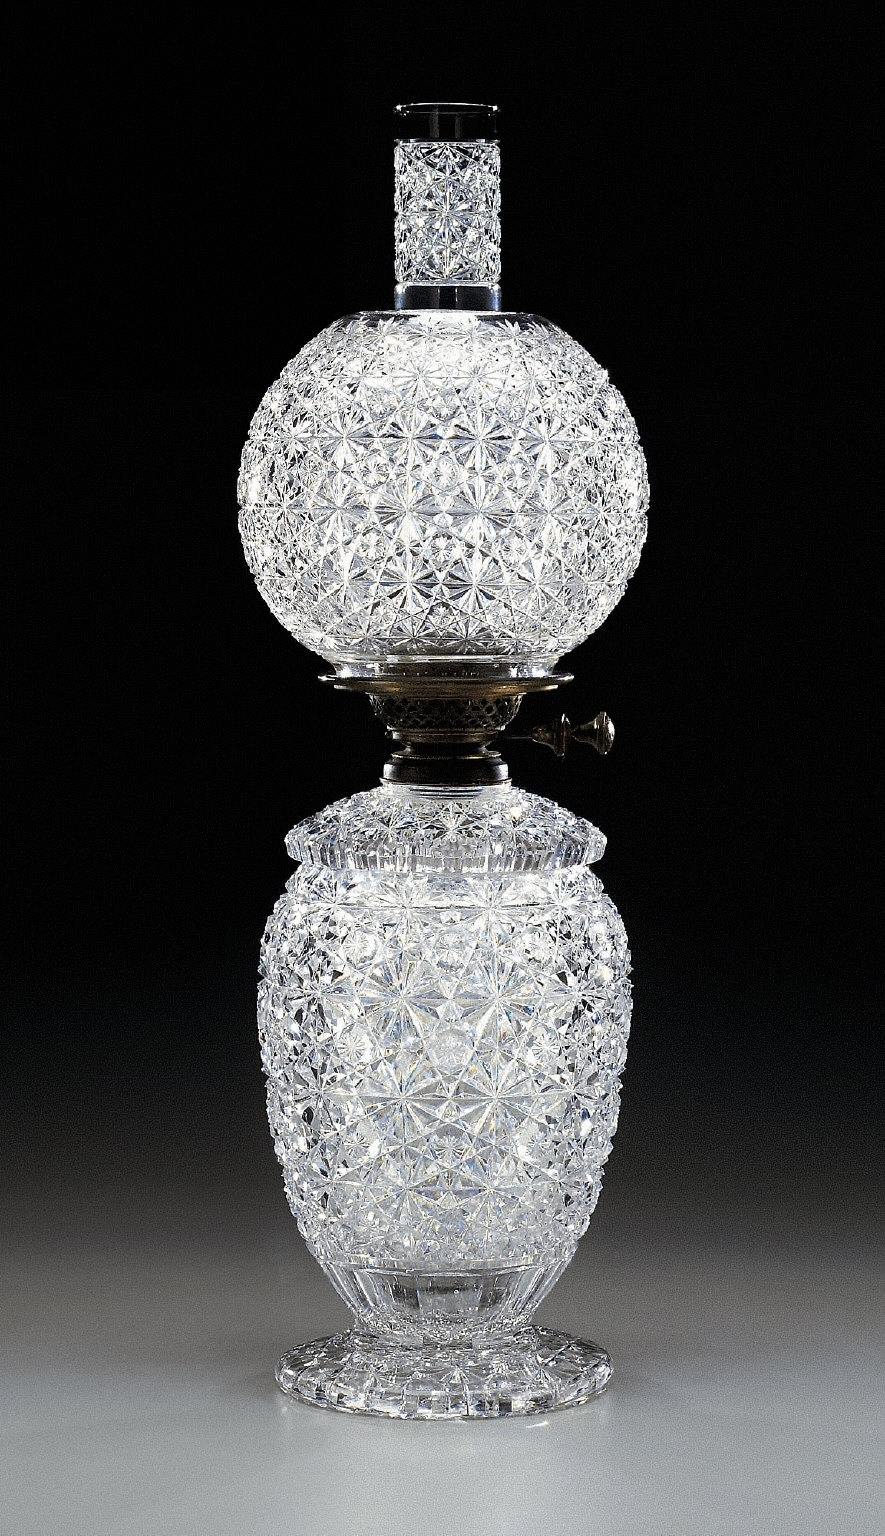 Oil lamp with 'Russian' pattern decoration